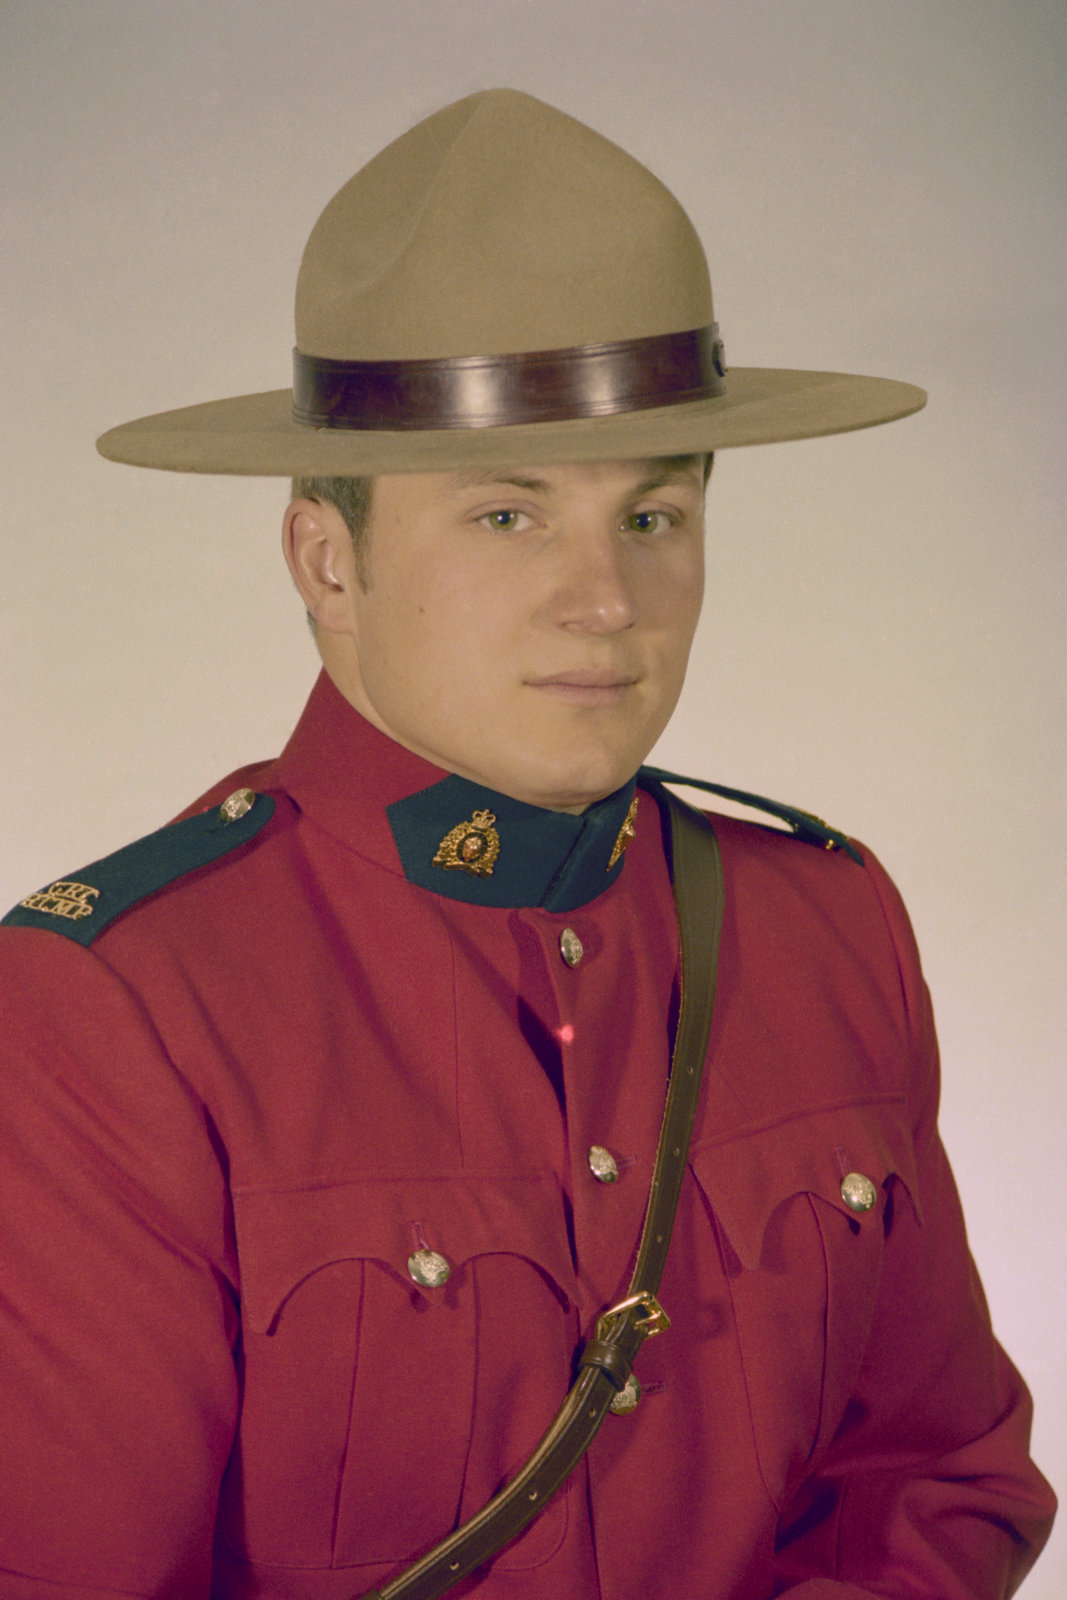 Constable Michael Joseph Buday – © Her Majesty the Queen in Right of Canada as represented by the Royal Canadian Mounted Police